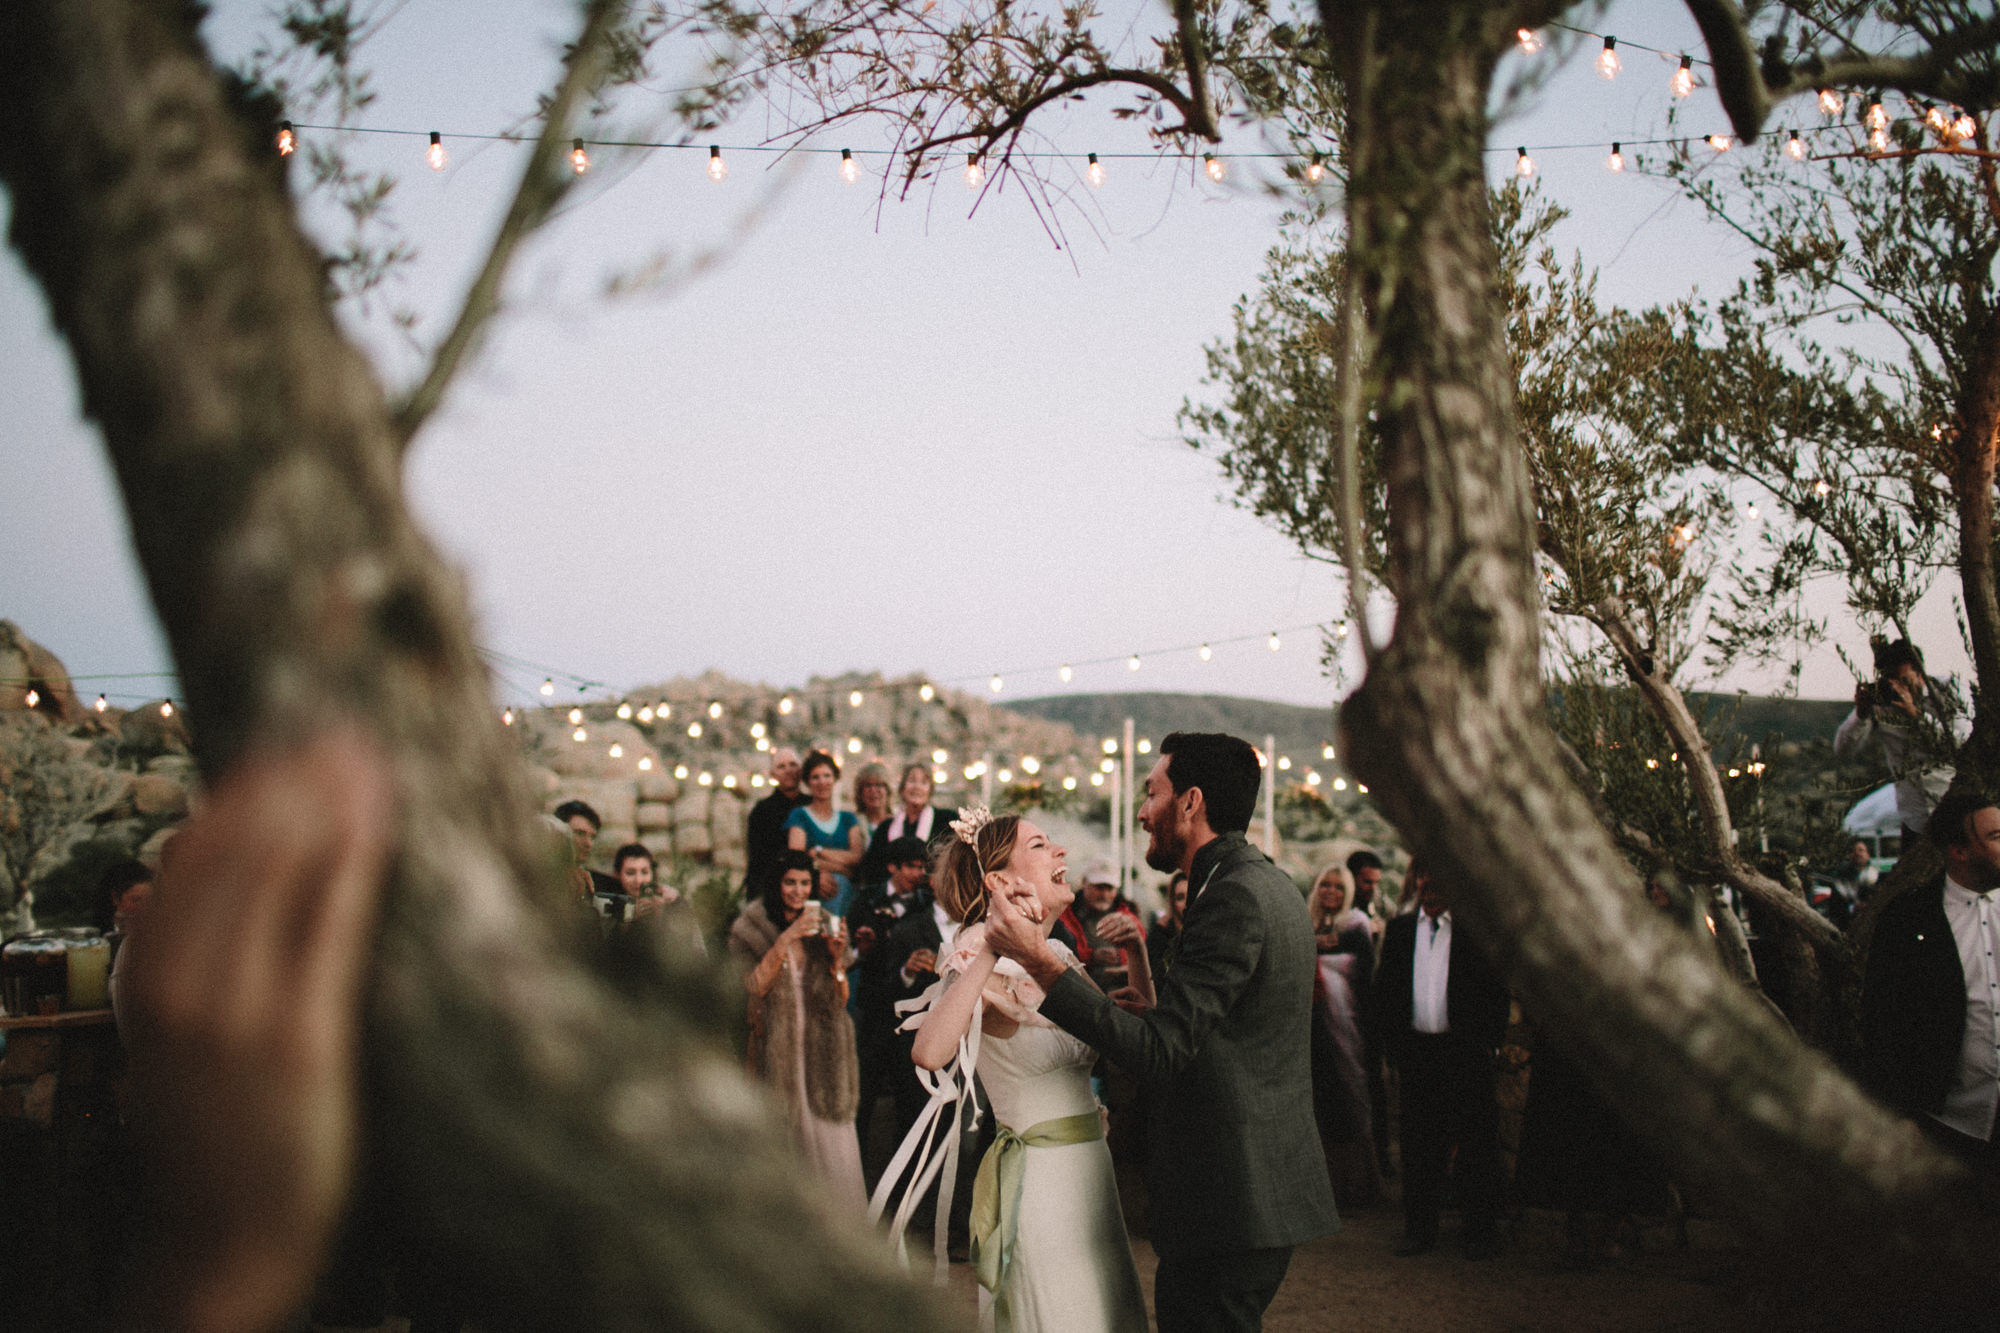 pioneertown-wedding-89.jpg